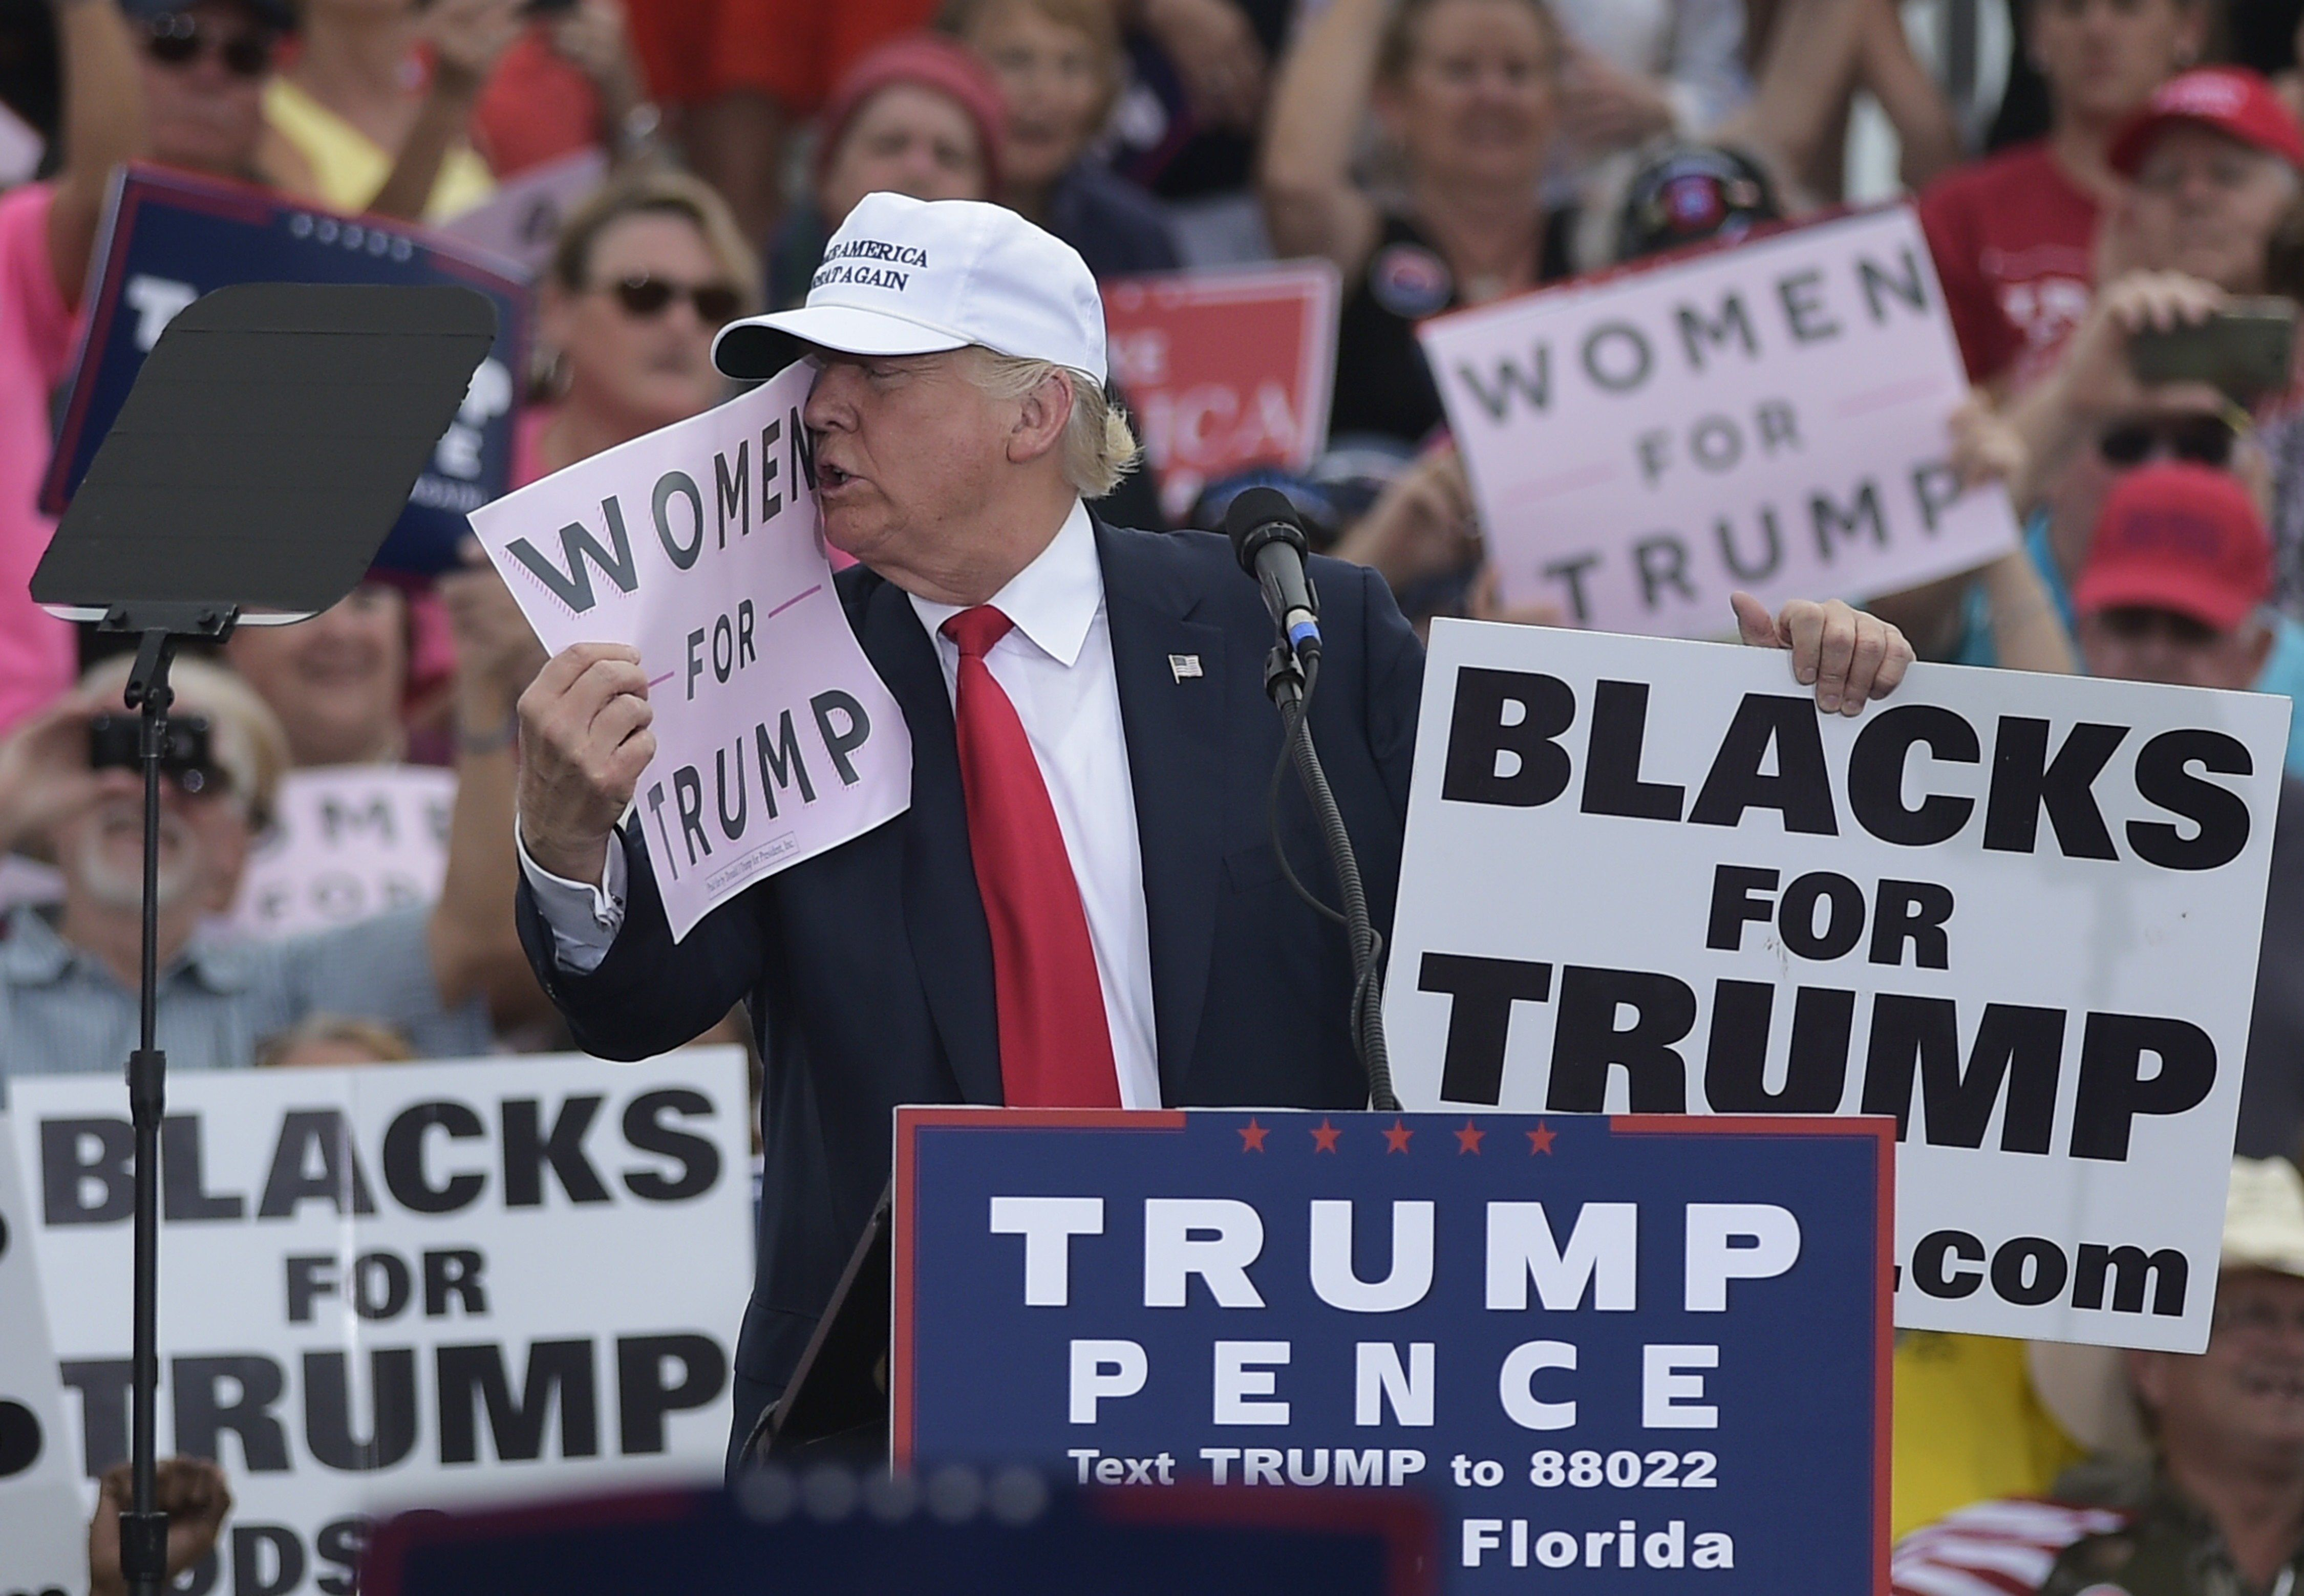 Republican presidential nominee Donald Trump kisses a 'Women for Trump' placard during a rally at the Lakeland Linder Regional Airport in Lakeland, Florida on October 12, 2016. / AFP / MANDEL NGAN        (Photo credit should read MANDEL NGAN/AFP/Getty Images)